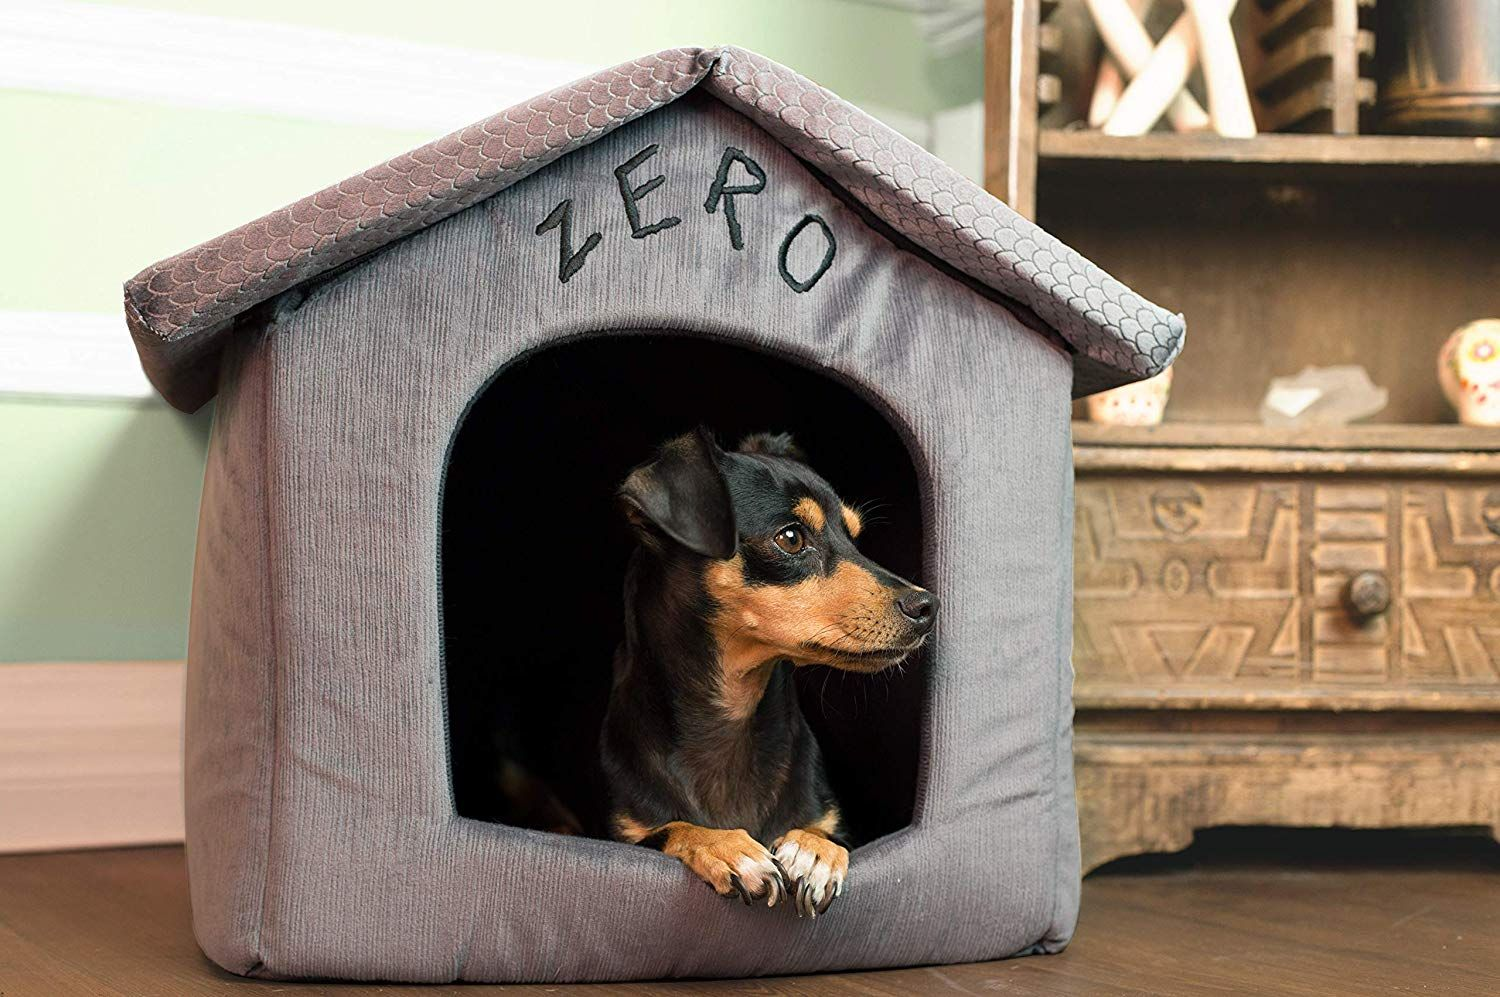 Nightmare Before Christmas Zero Portable Pet House/Dog Bed